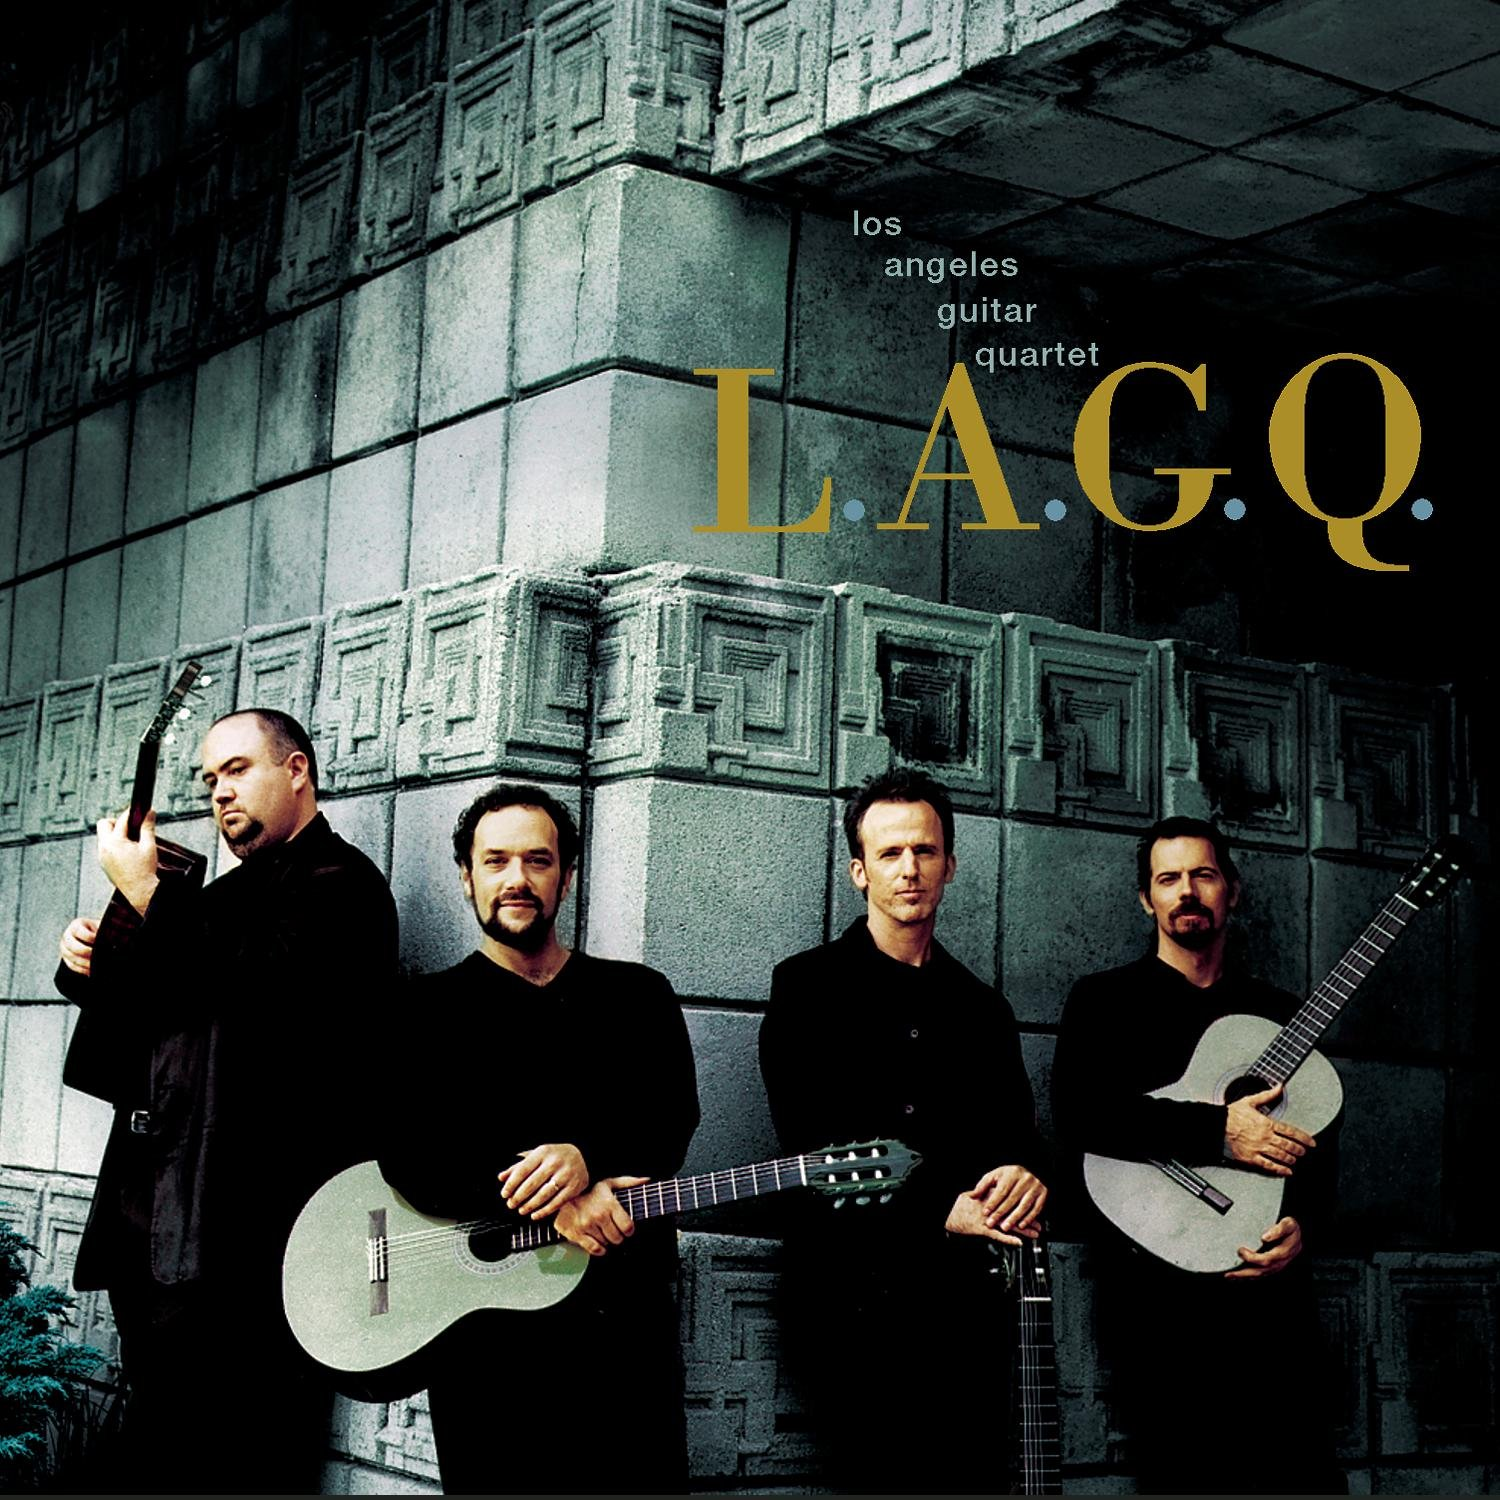 L.A.G.Q. (Los Angeles Guitar Quartet) by Sony Classical